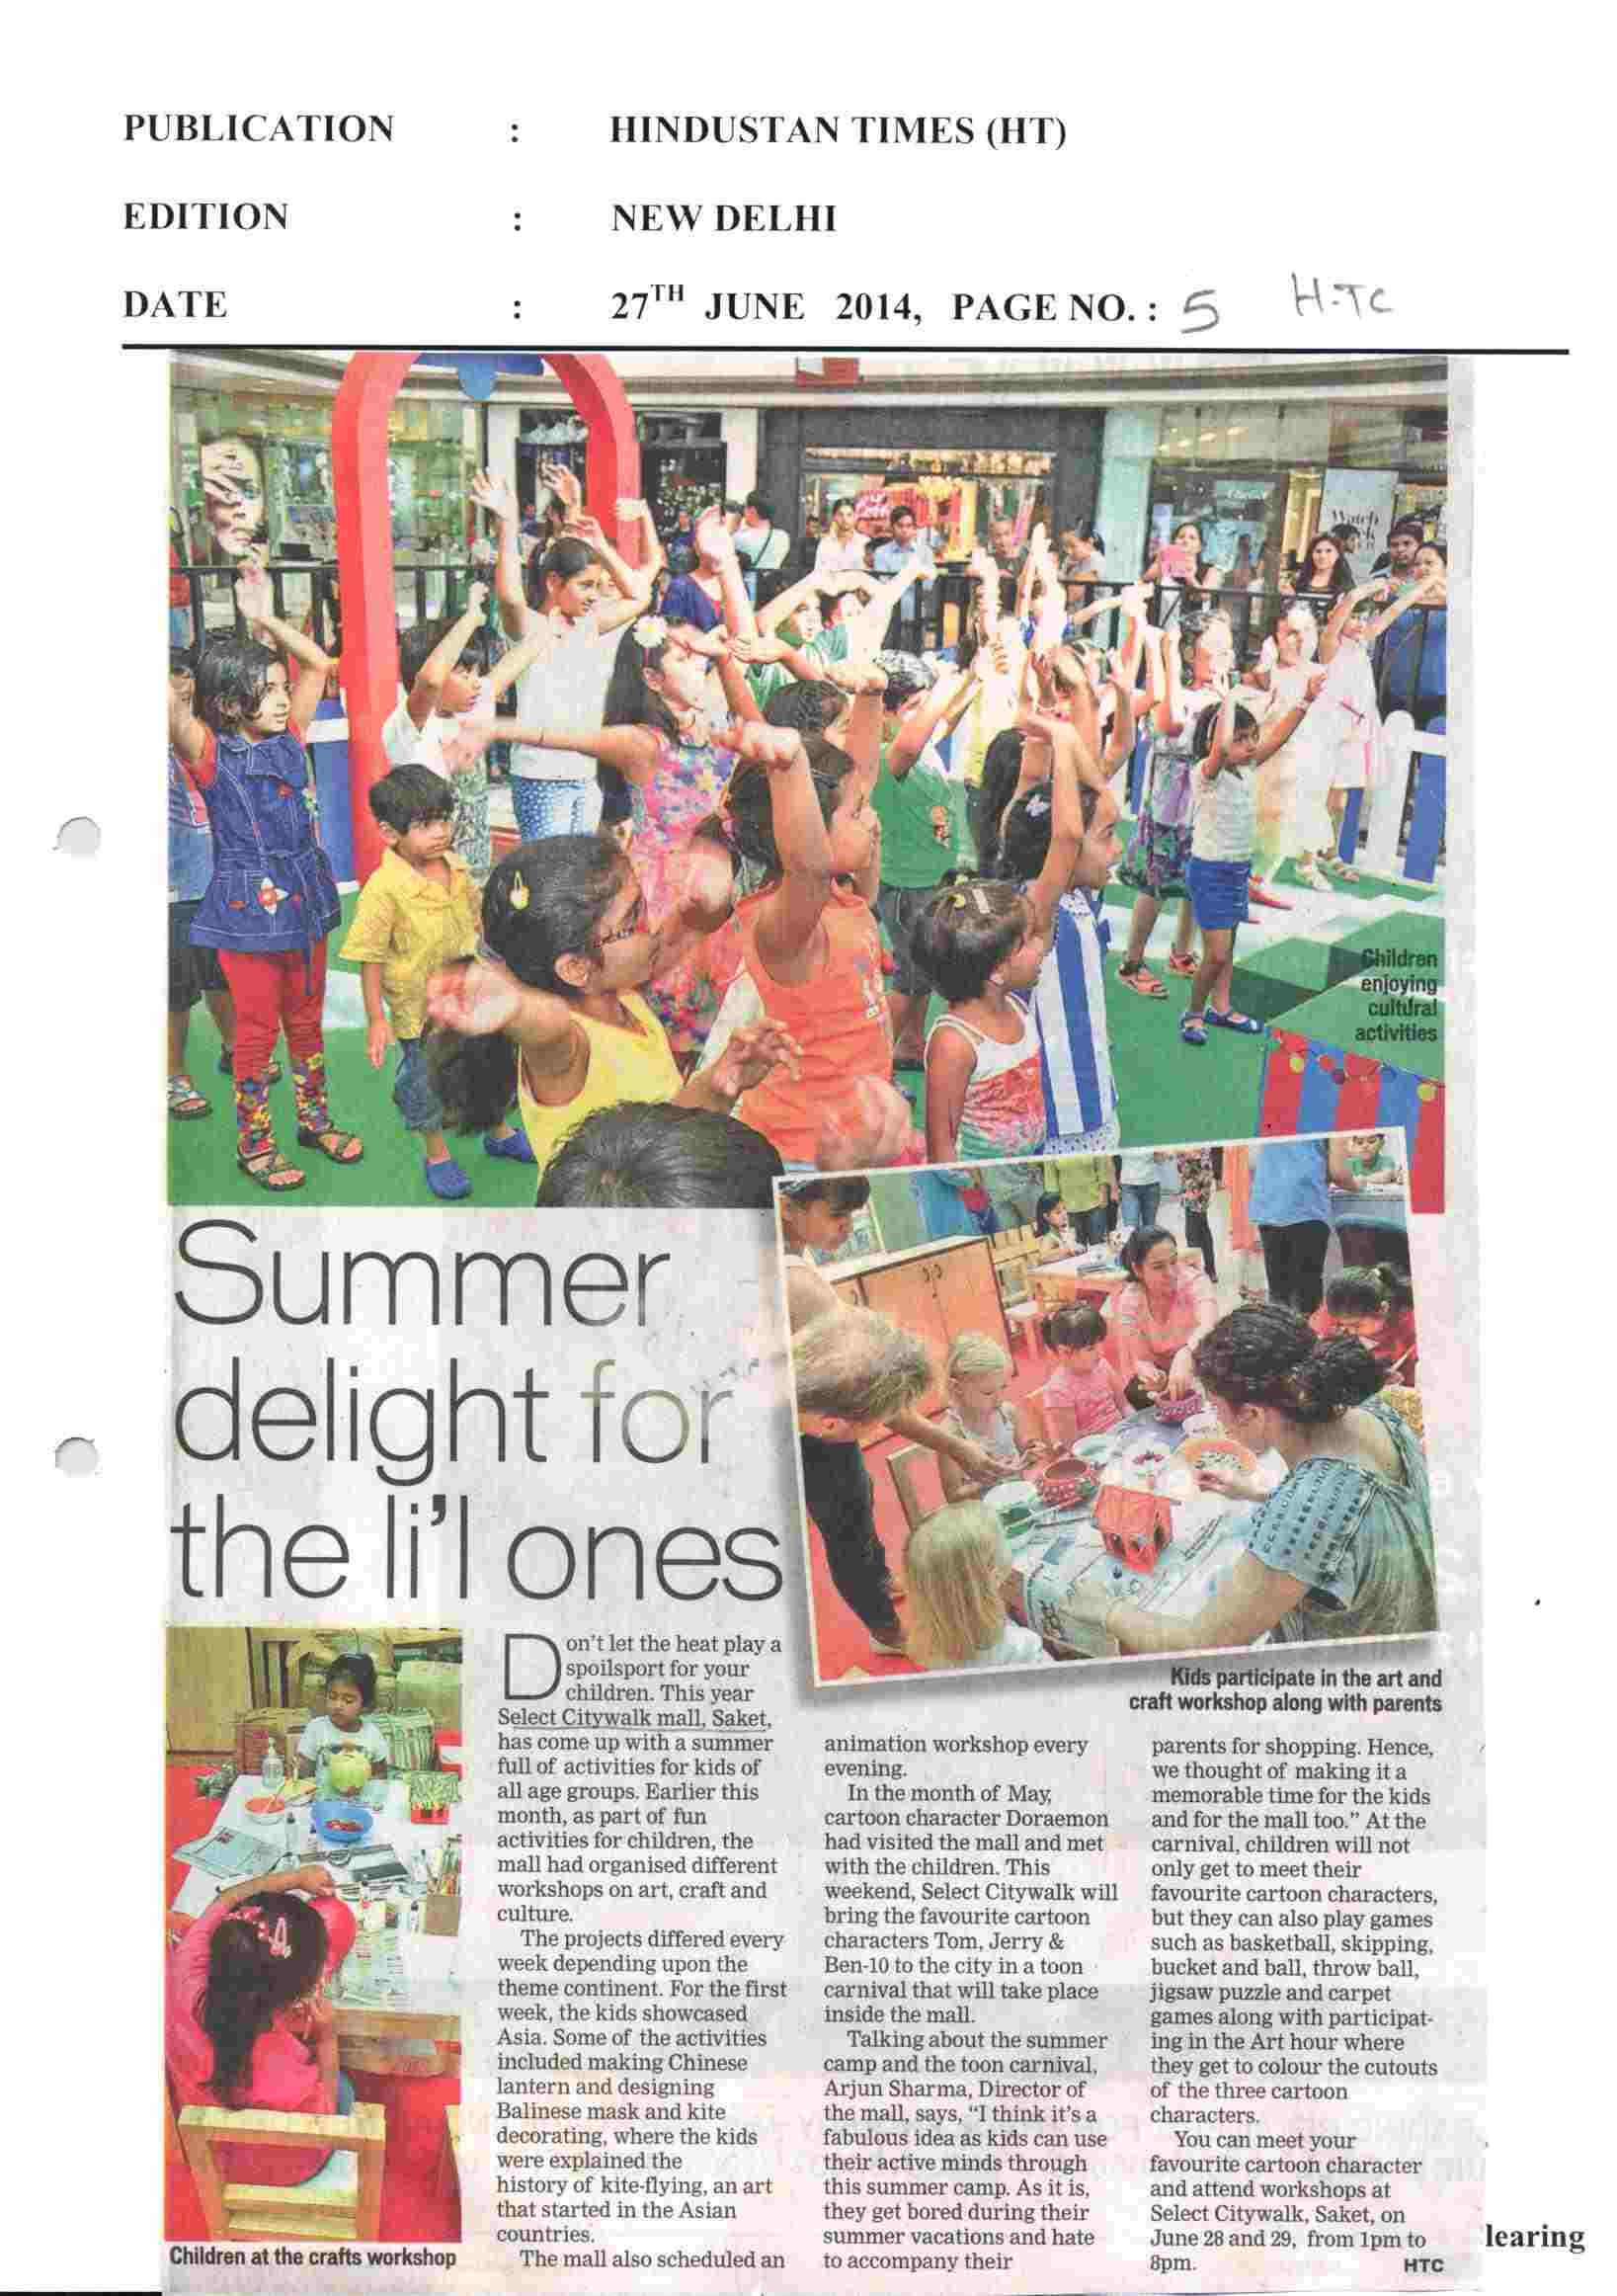 Summer delight for the li'l ones